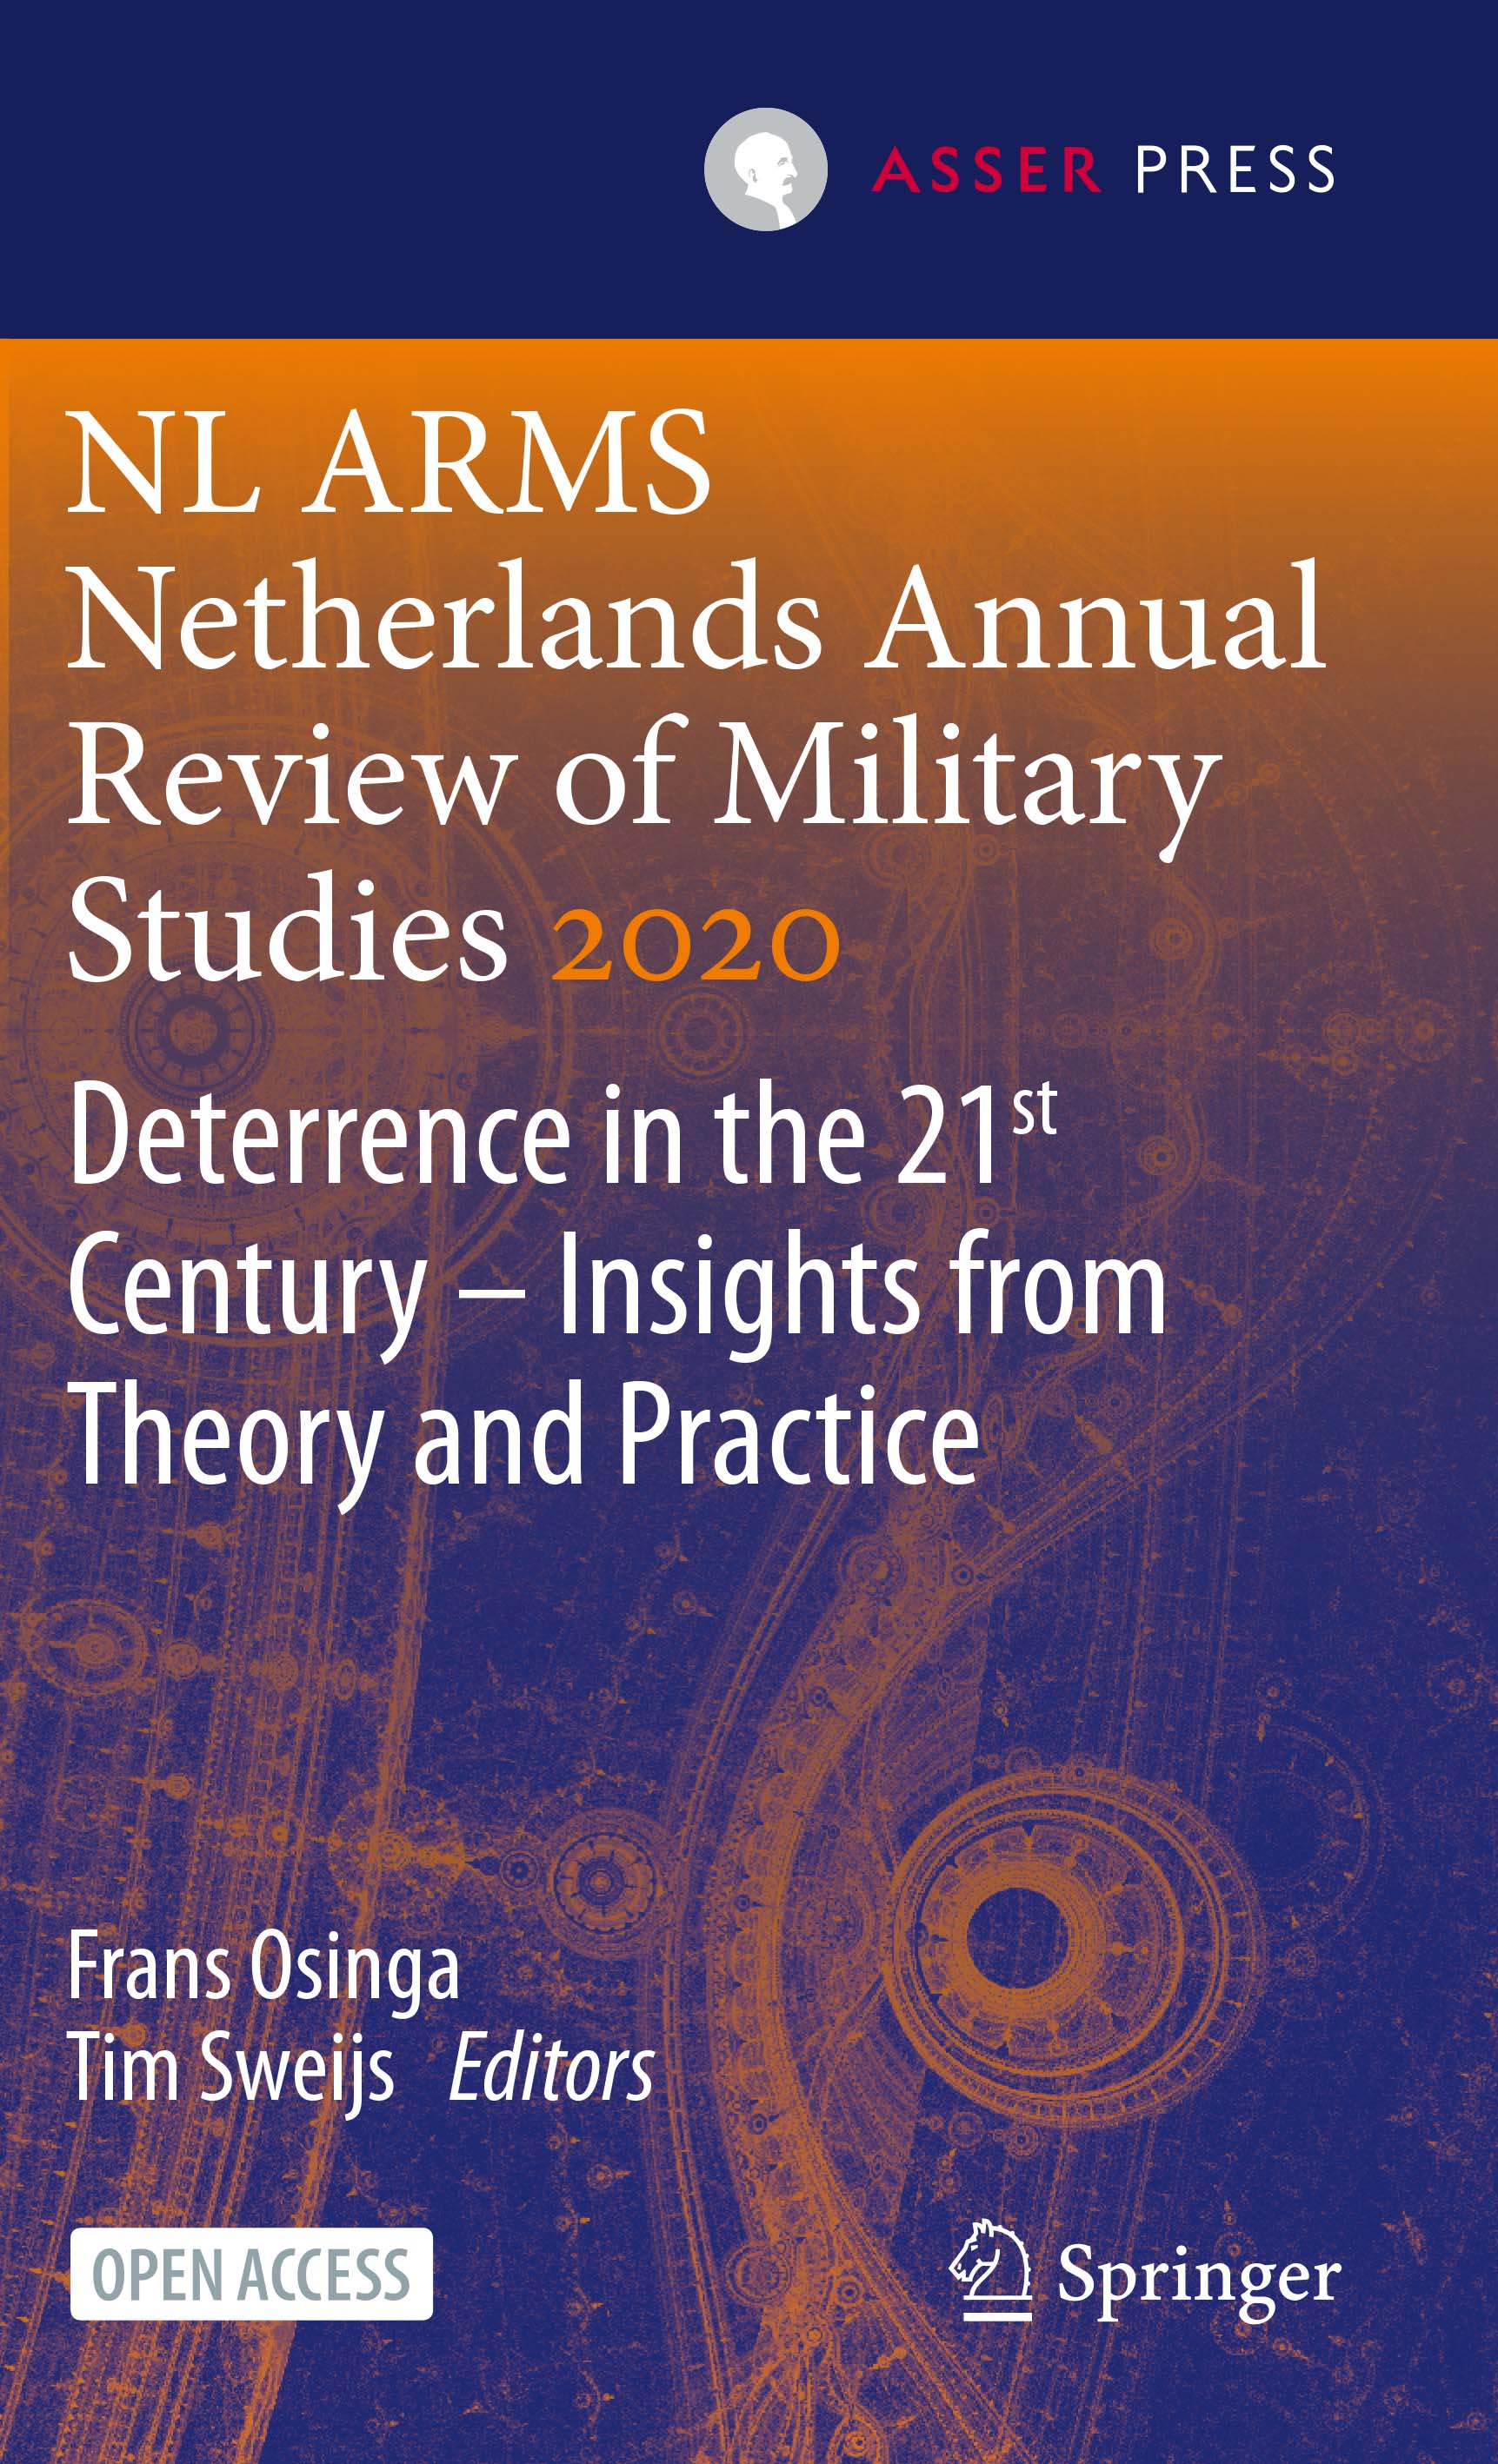 NL ARMS 2020 - Deterrence in the 21st Century – Insights from Theory and Practice